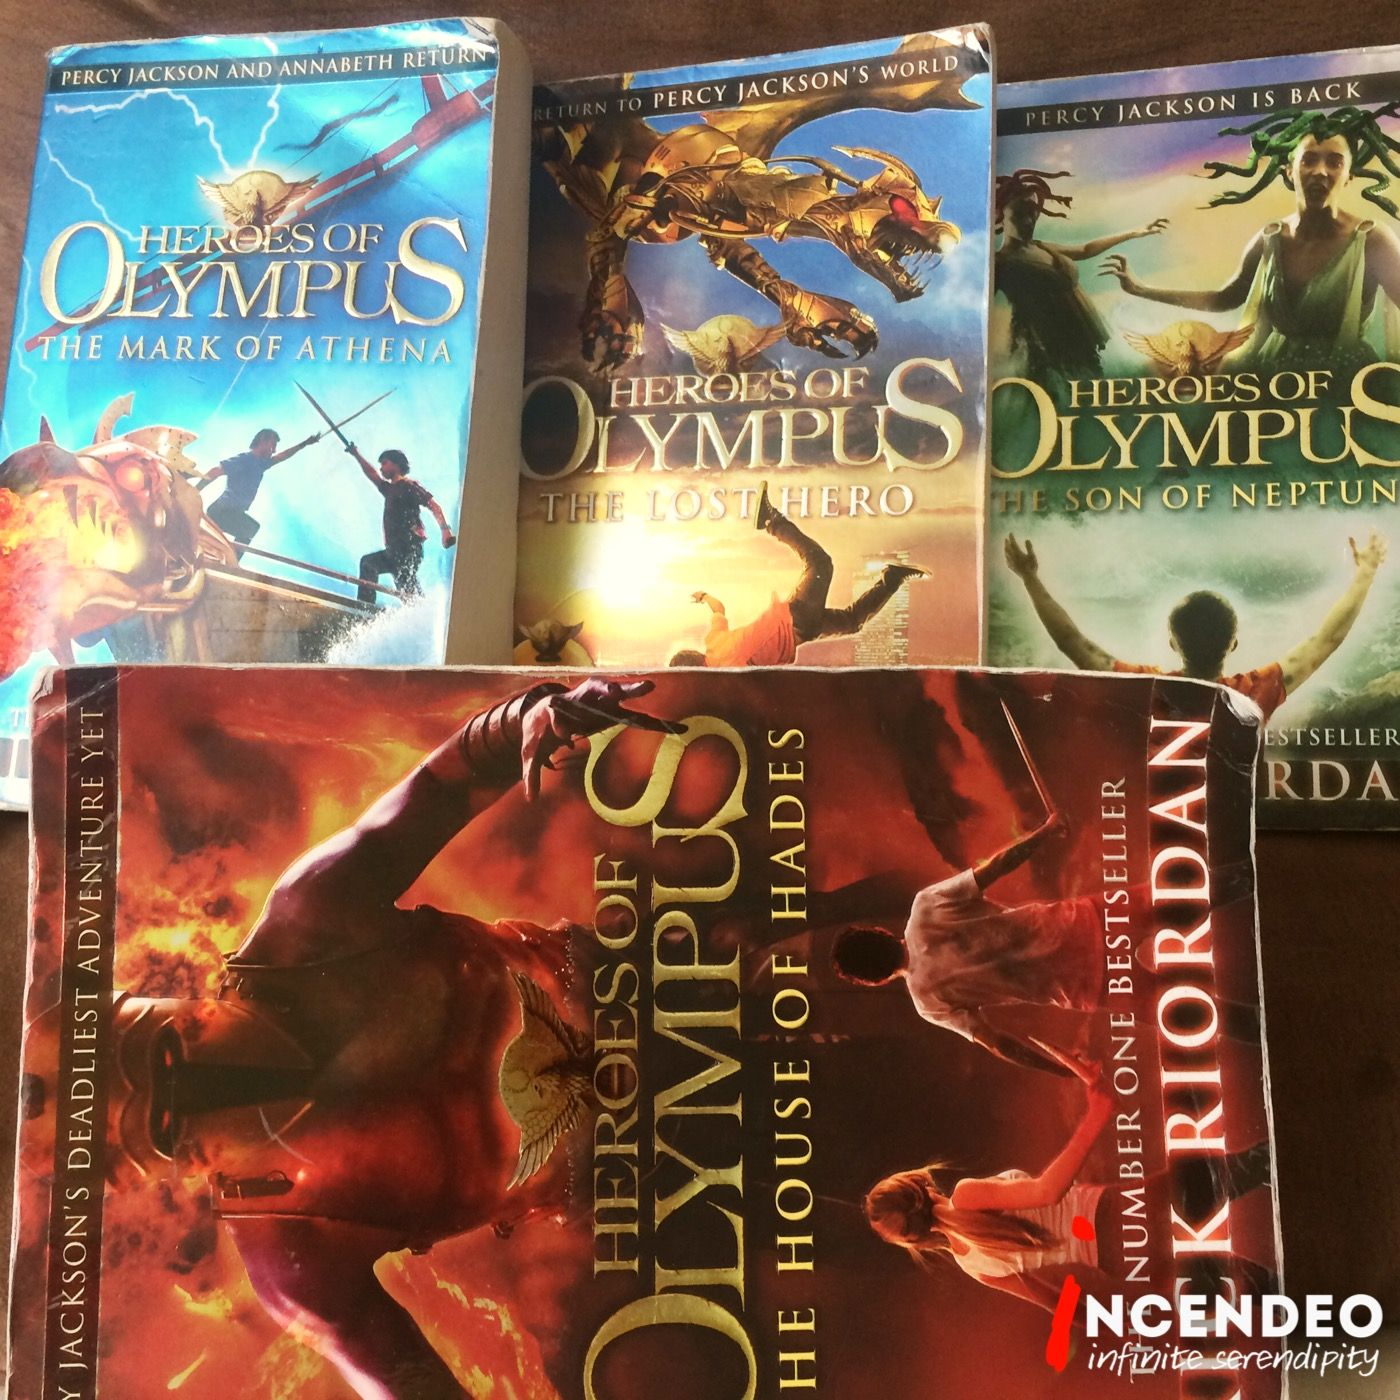 Heroes of olympus story book collections percyjackson